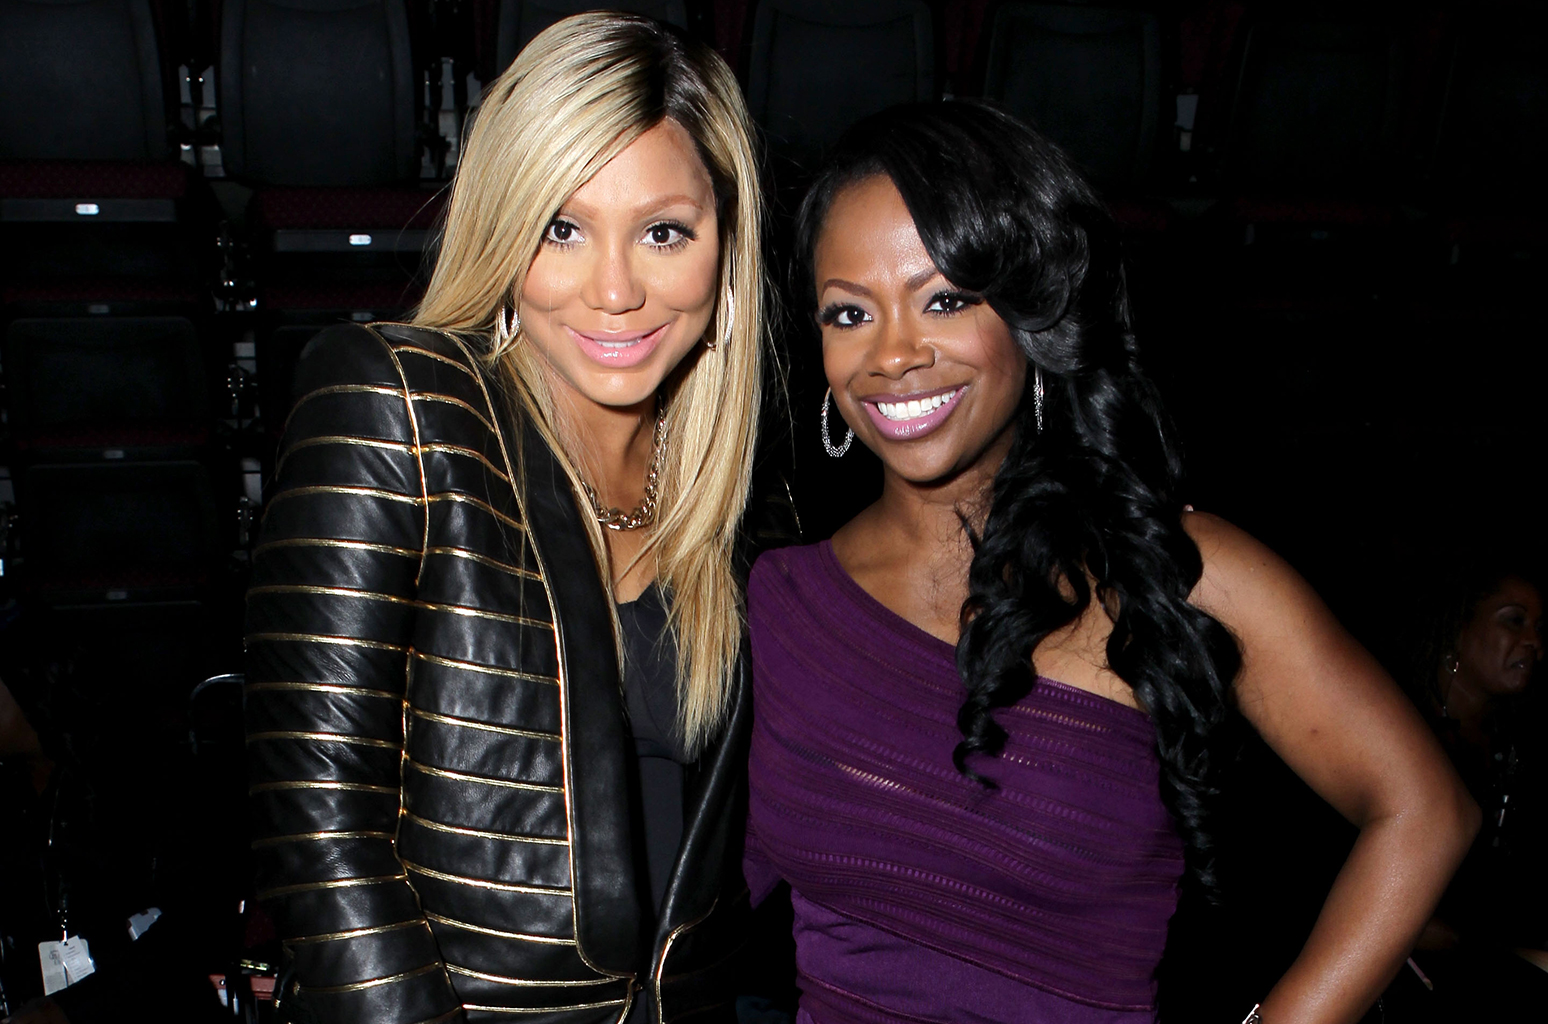 """tamar-braxton-addresses-her-relationship-with-kandi-burruss-she-never-really-liked-me-like-that-kandi-explains-her-reasons-watch-the-videos-of-both-ladies"""